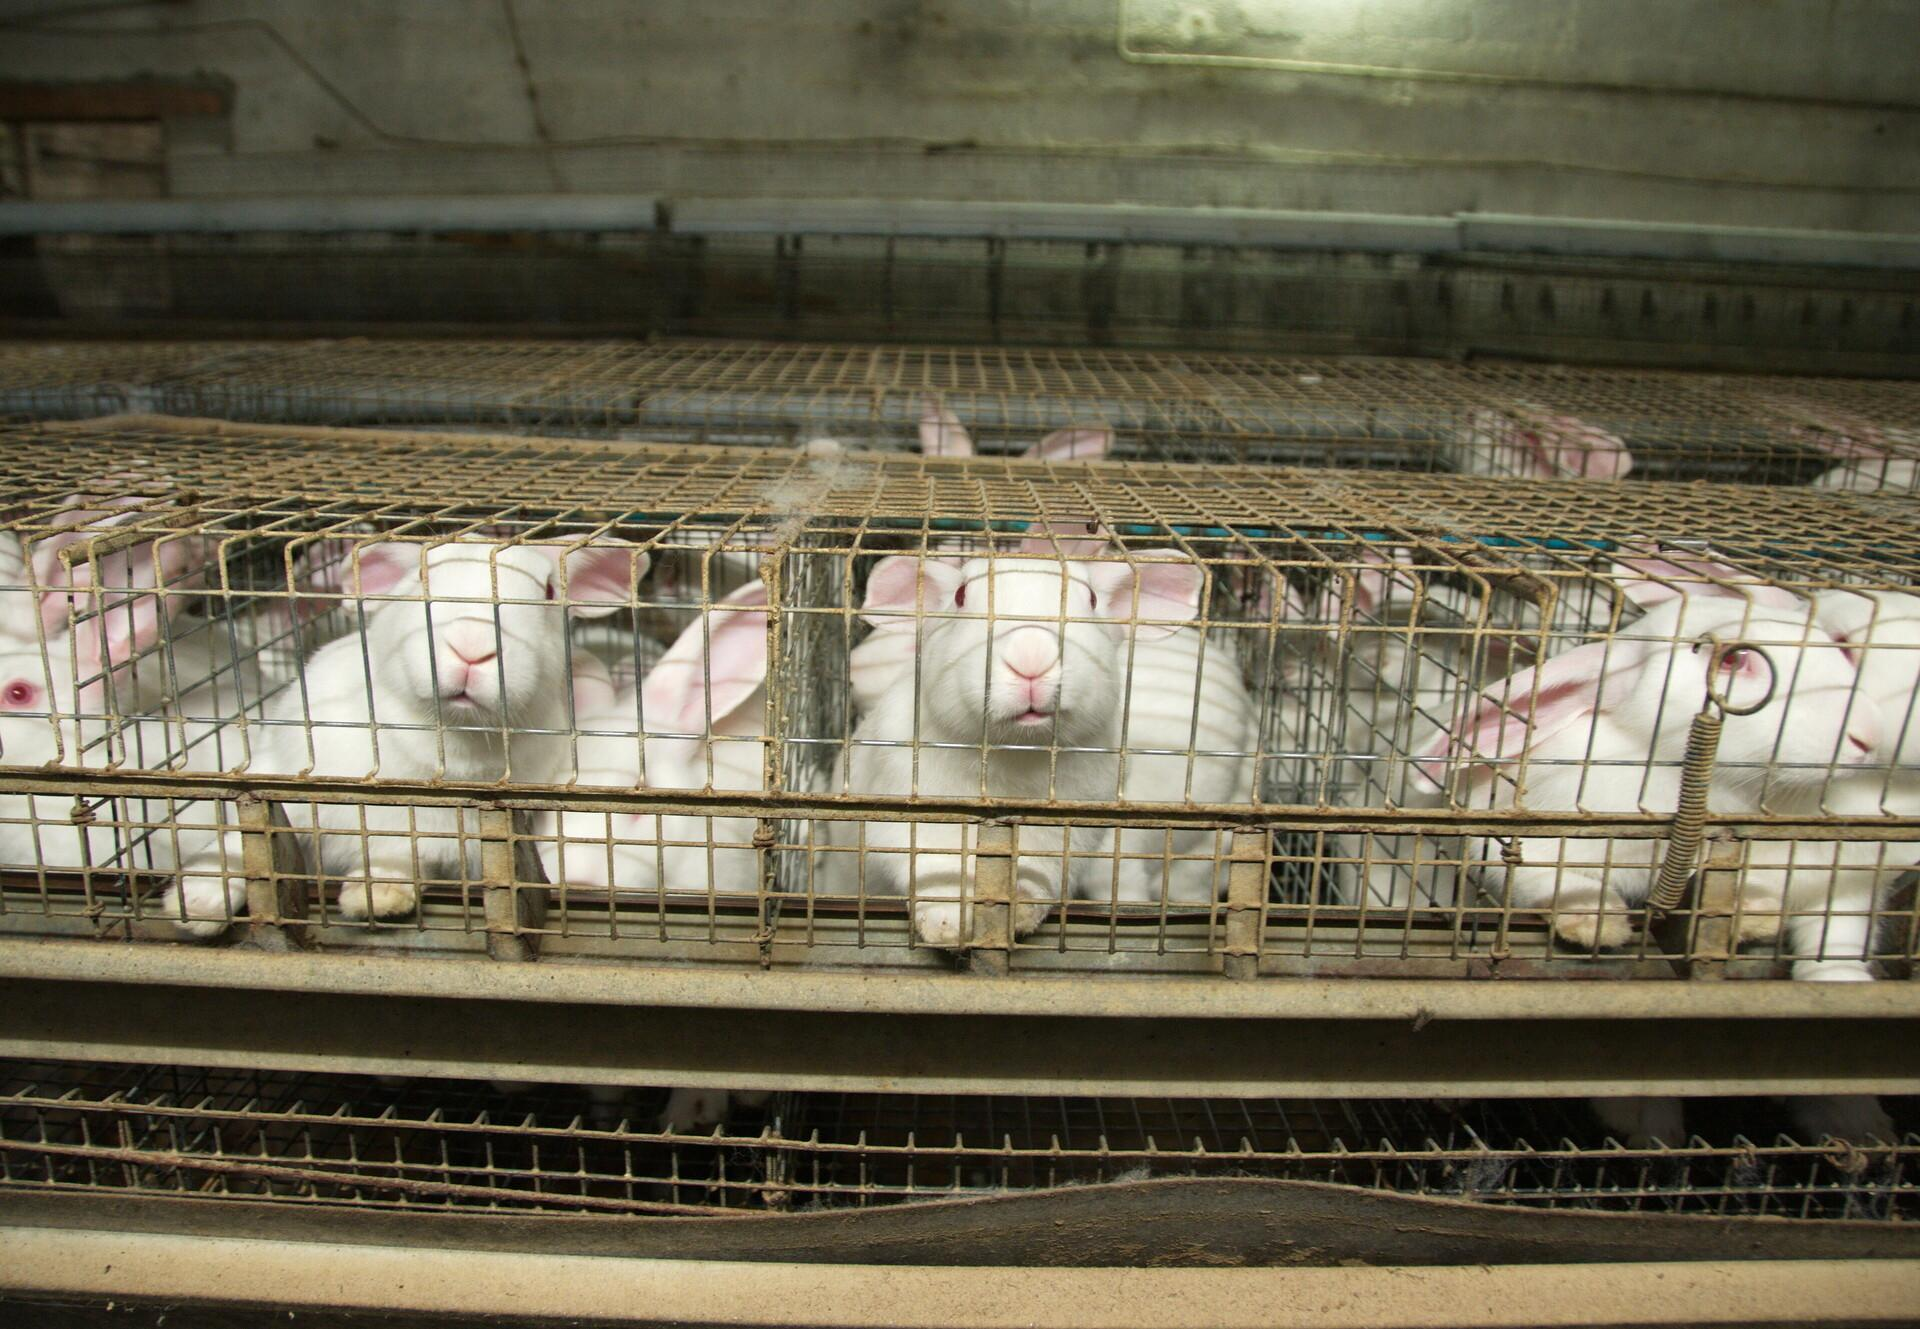 Farmed rabbits in cages, Italy